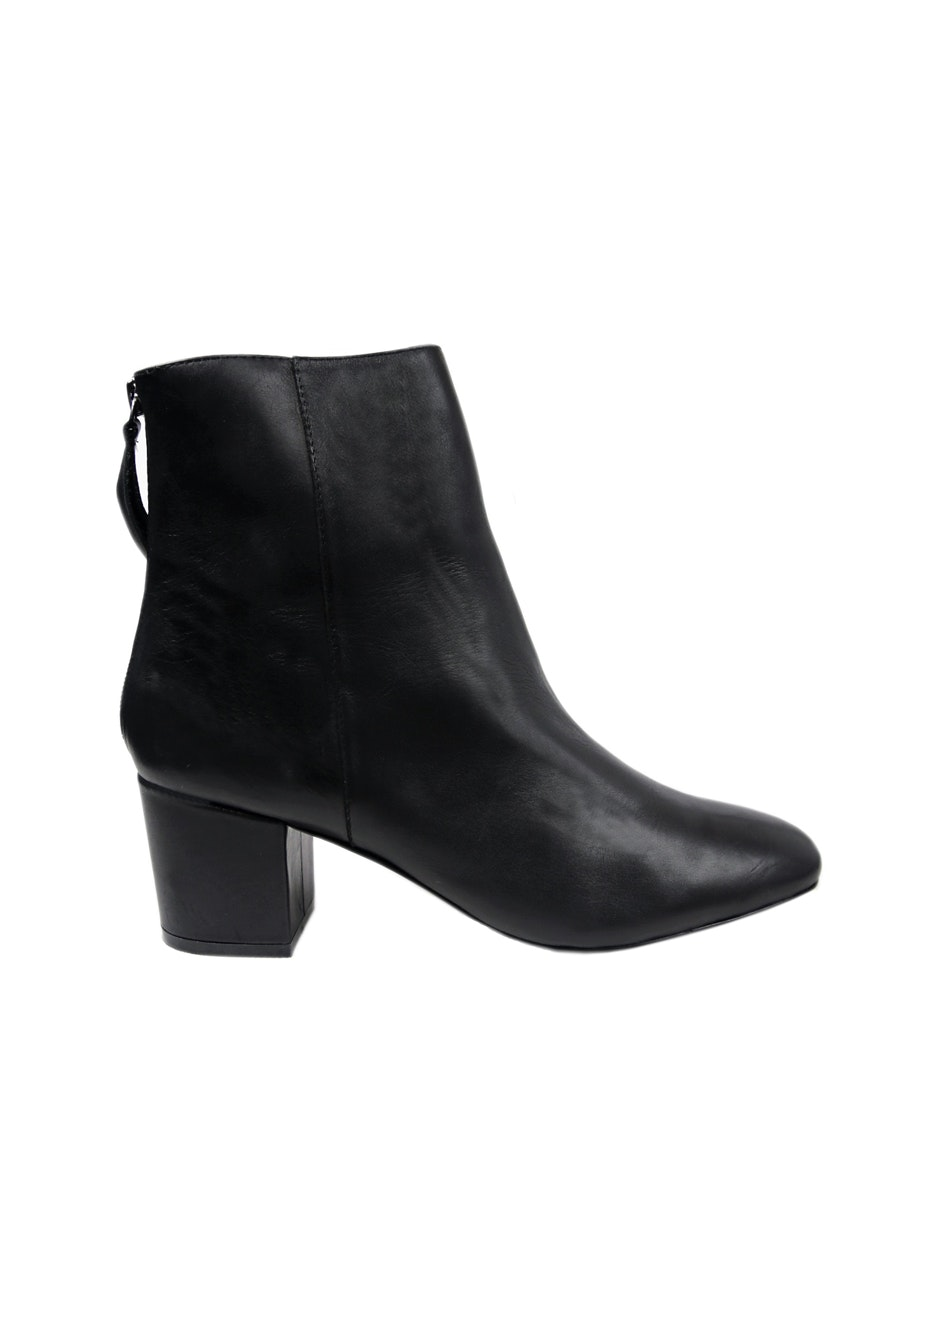 Mr W & Me - Ever After Boot - Black